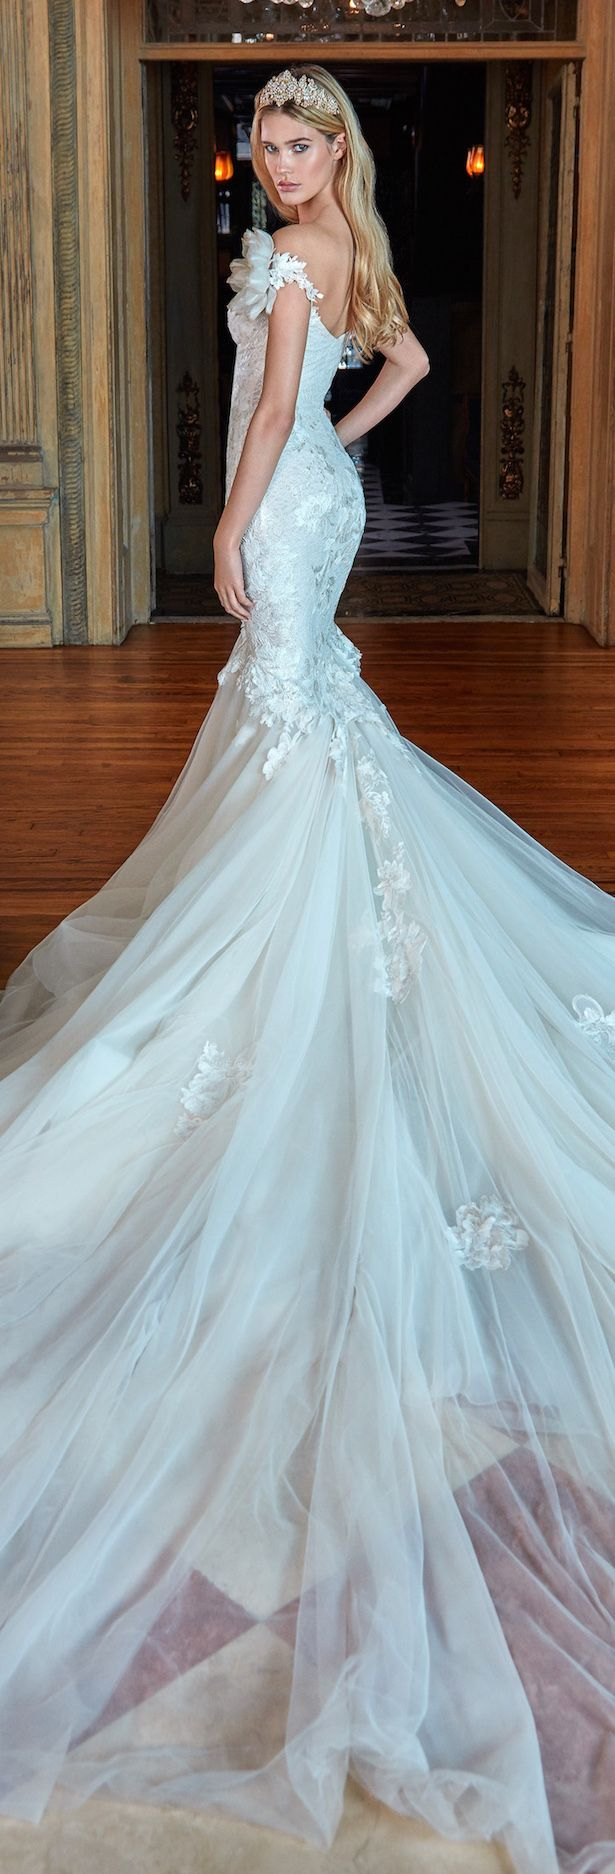 2711 best wedding images on Pinterest | Bridal dresses, Short ...